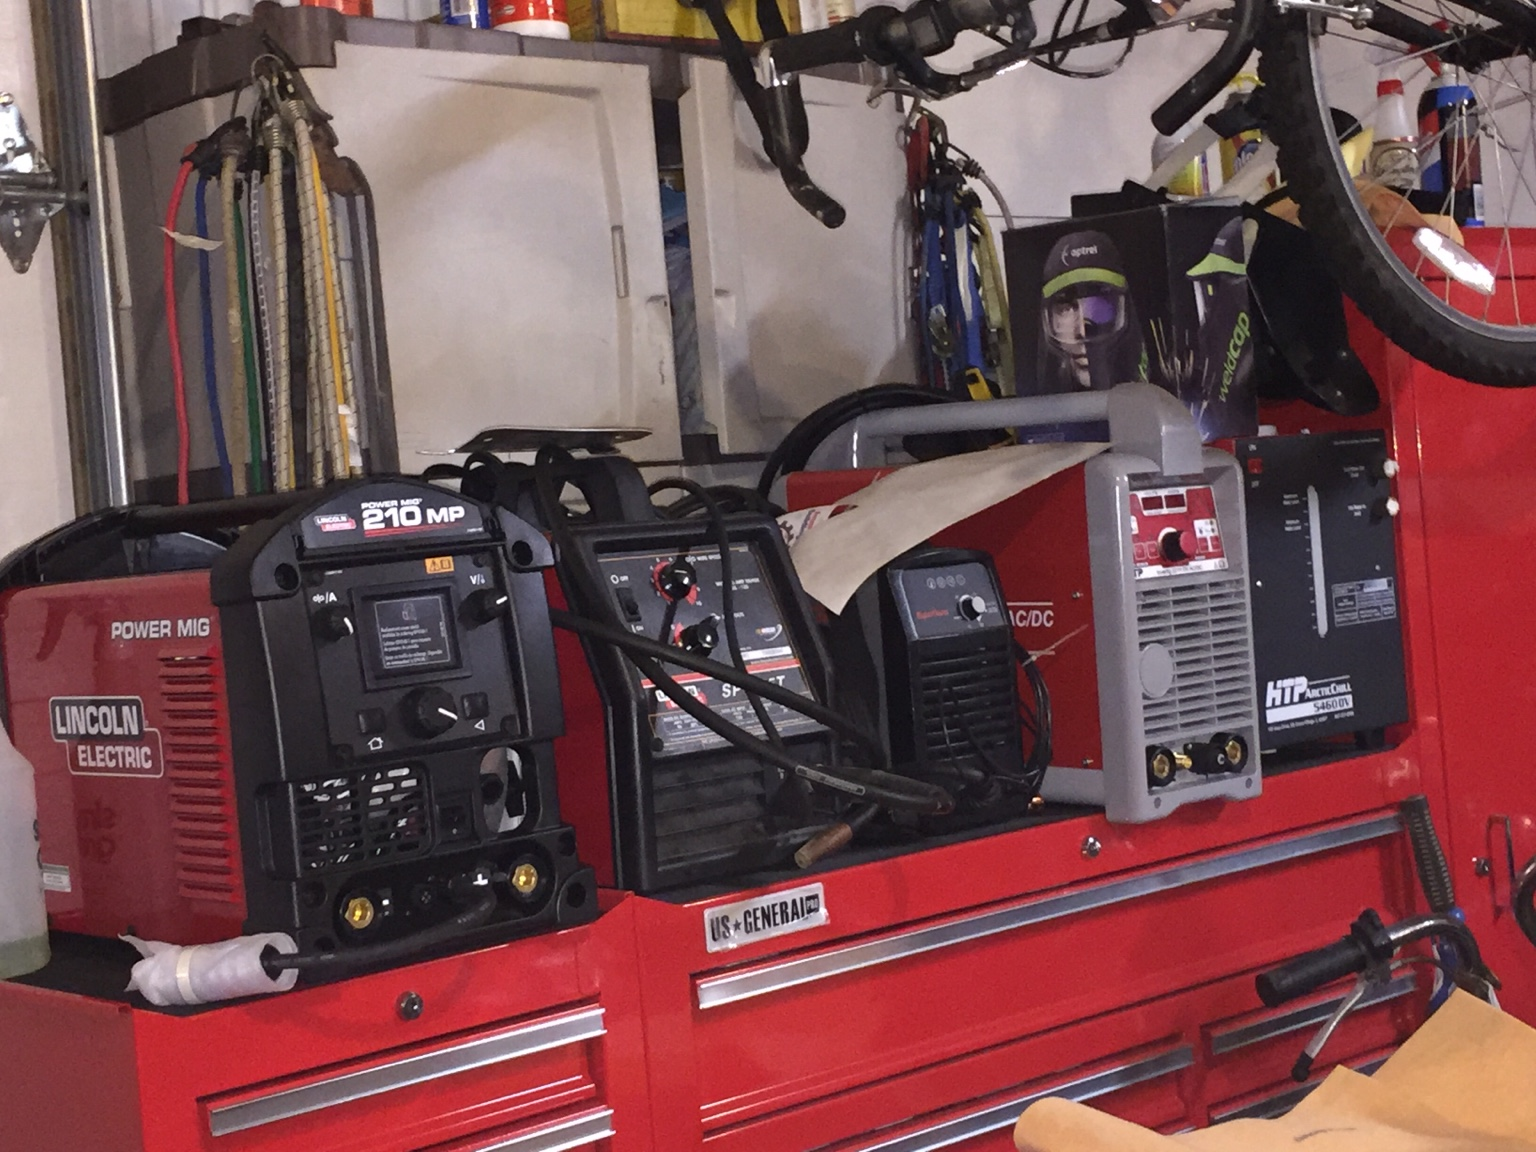 Left To Right The 210 Mp An Sp135t Mig Hypertherm Max 30 Dual Voltage Plasma Cutter Htp 221 Invertig Tig Welder Arctic Chill Dv